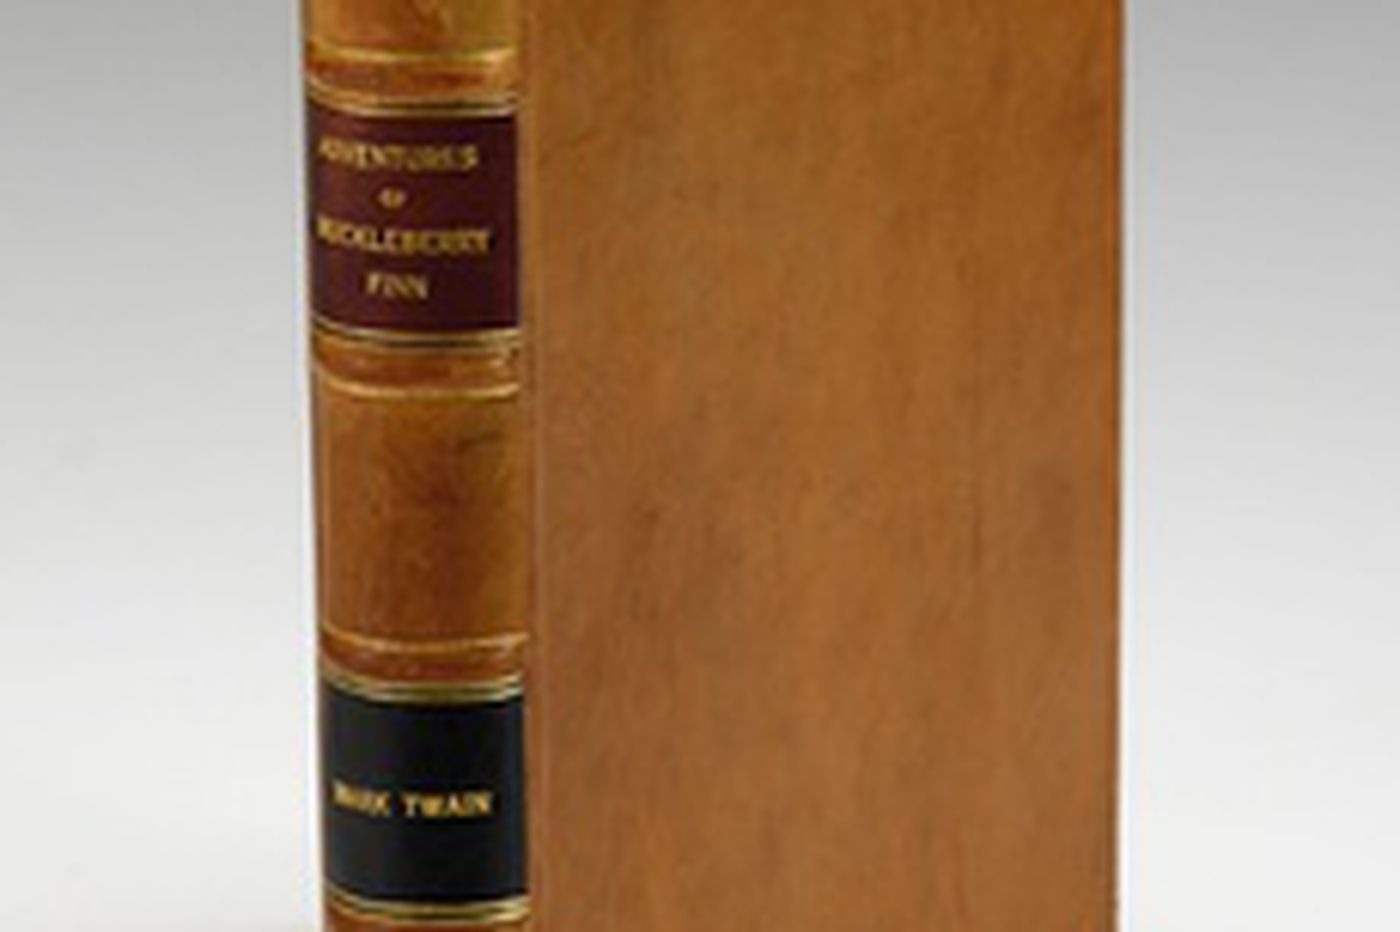 Auctions: Rare books, varied subjects